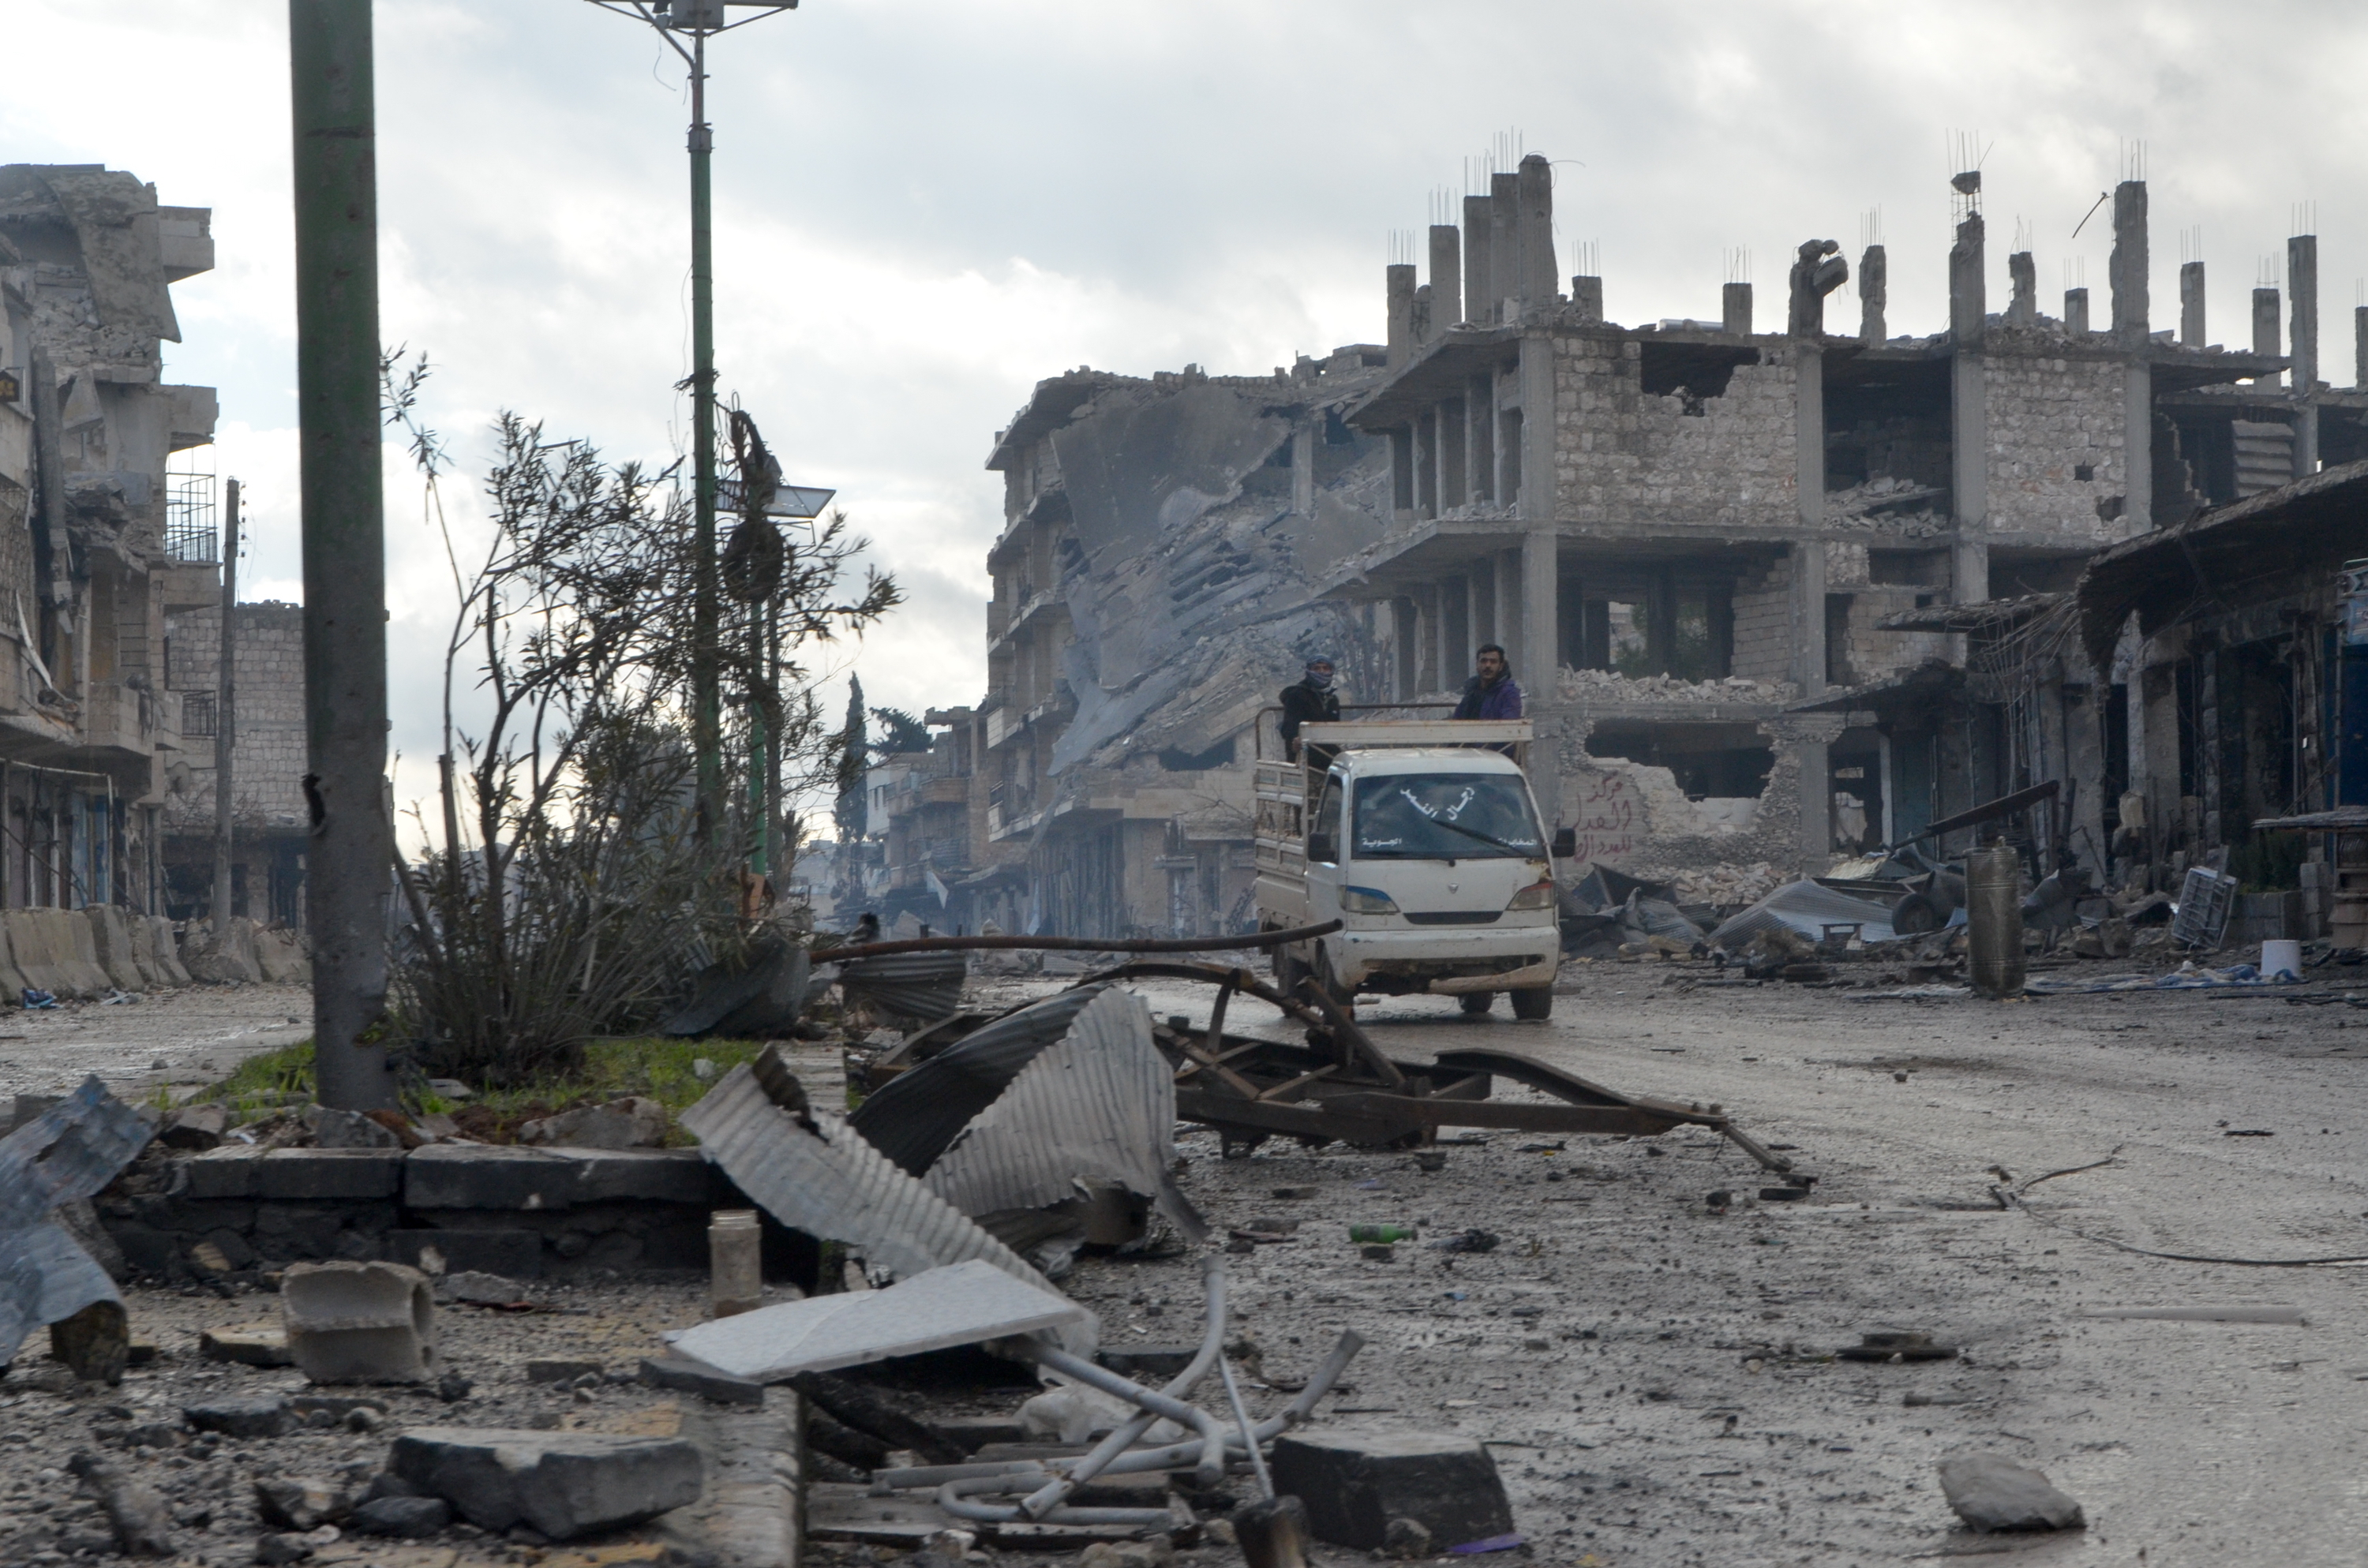 Russia-backed Syrian troops repel attacks of Turkey-supported militants: Russian military - Xinhua | English.news.cn